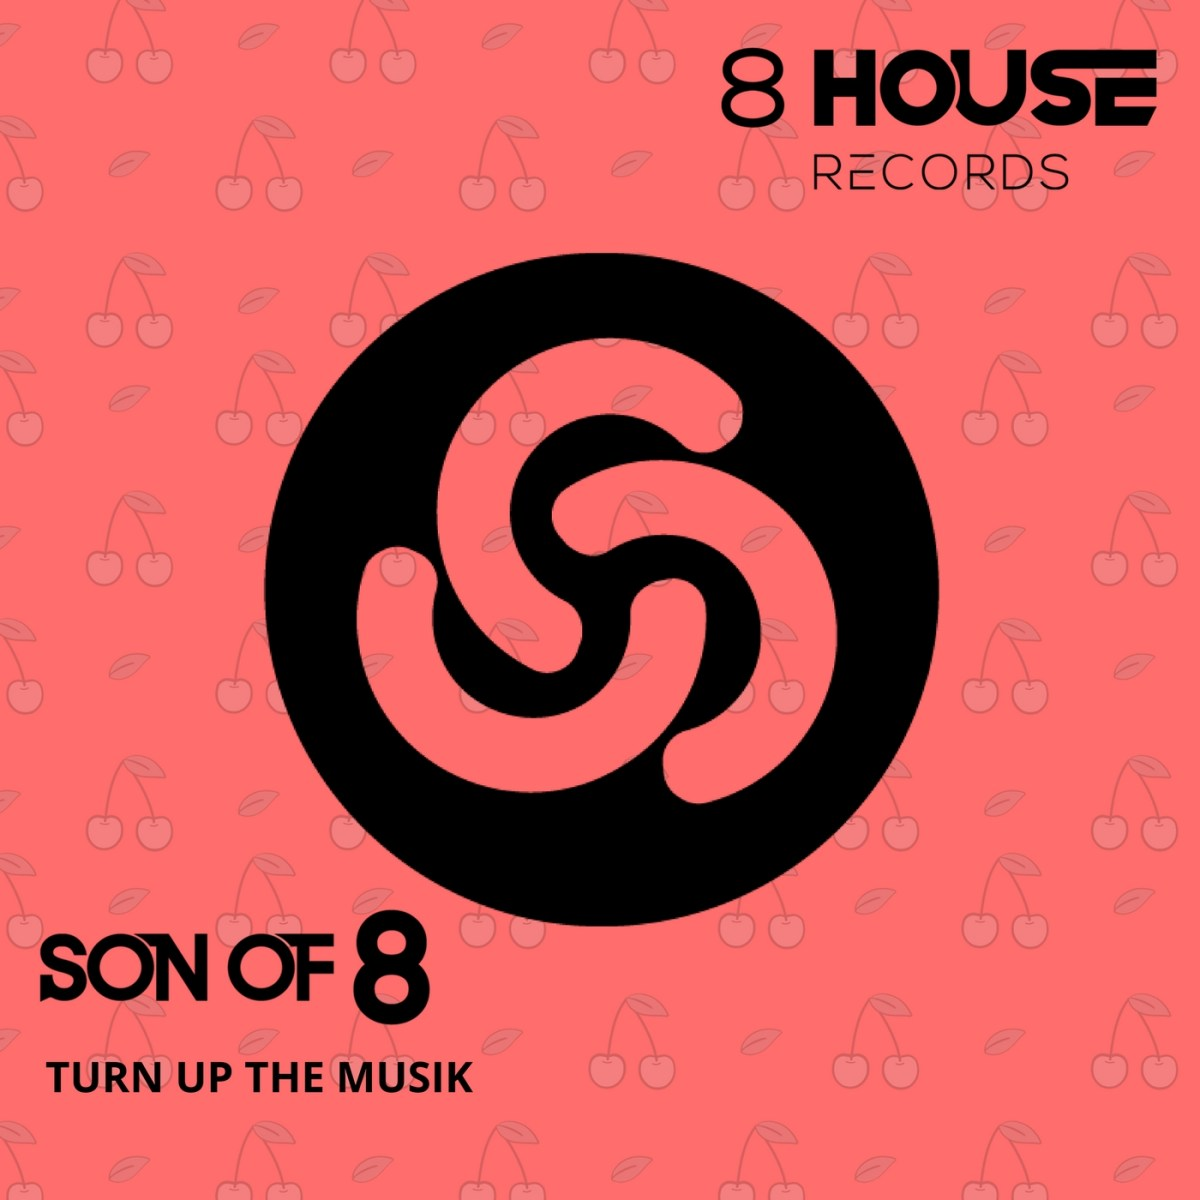 Premiere: Son of 8 - Turn Up The Muzik EP [8 House Records]